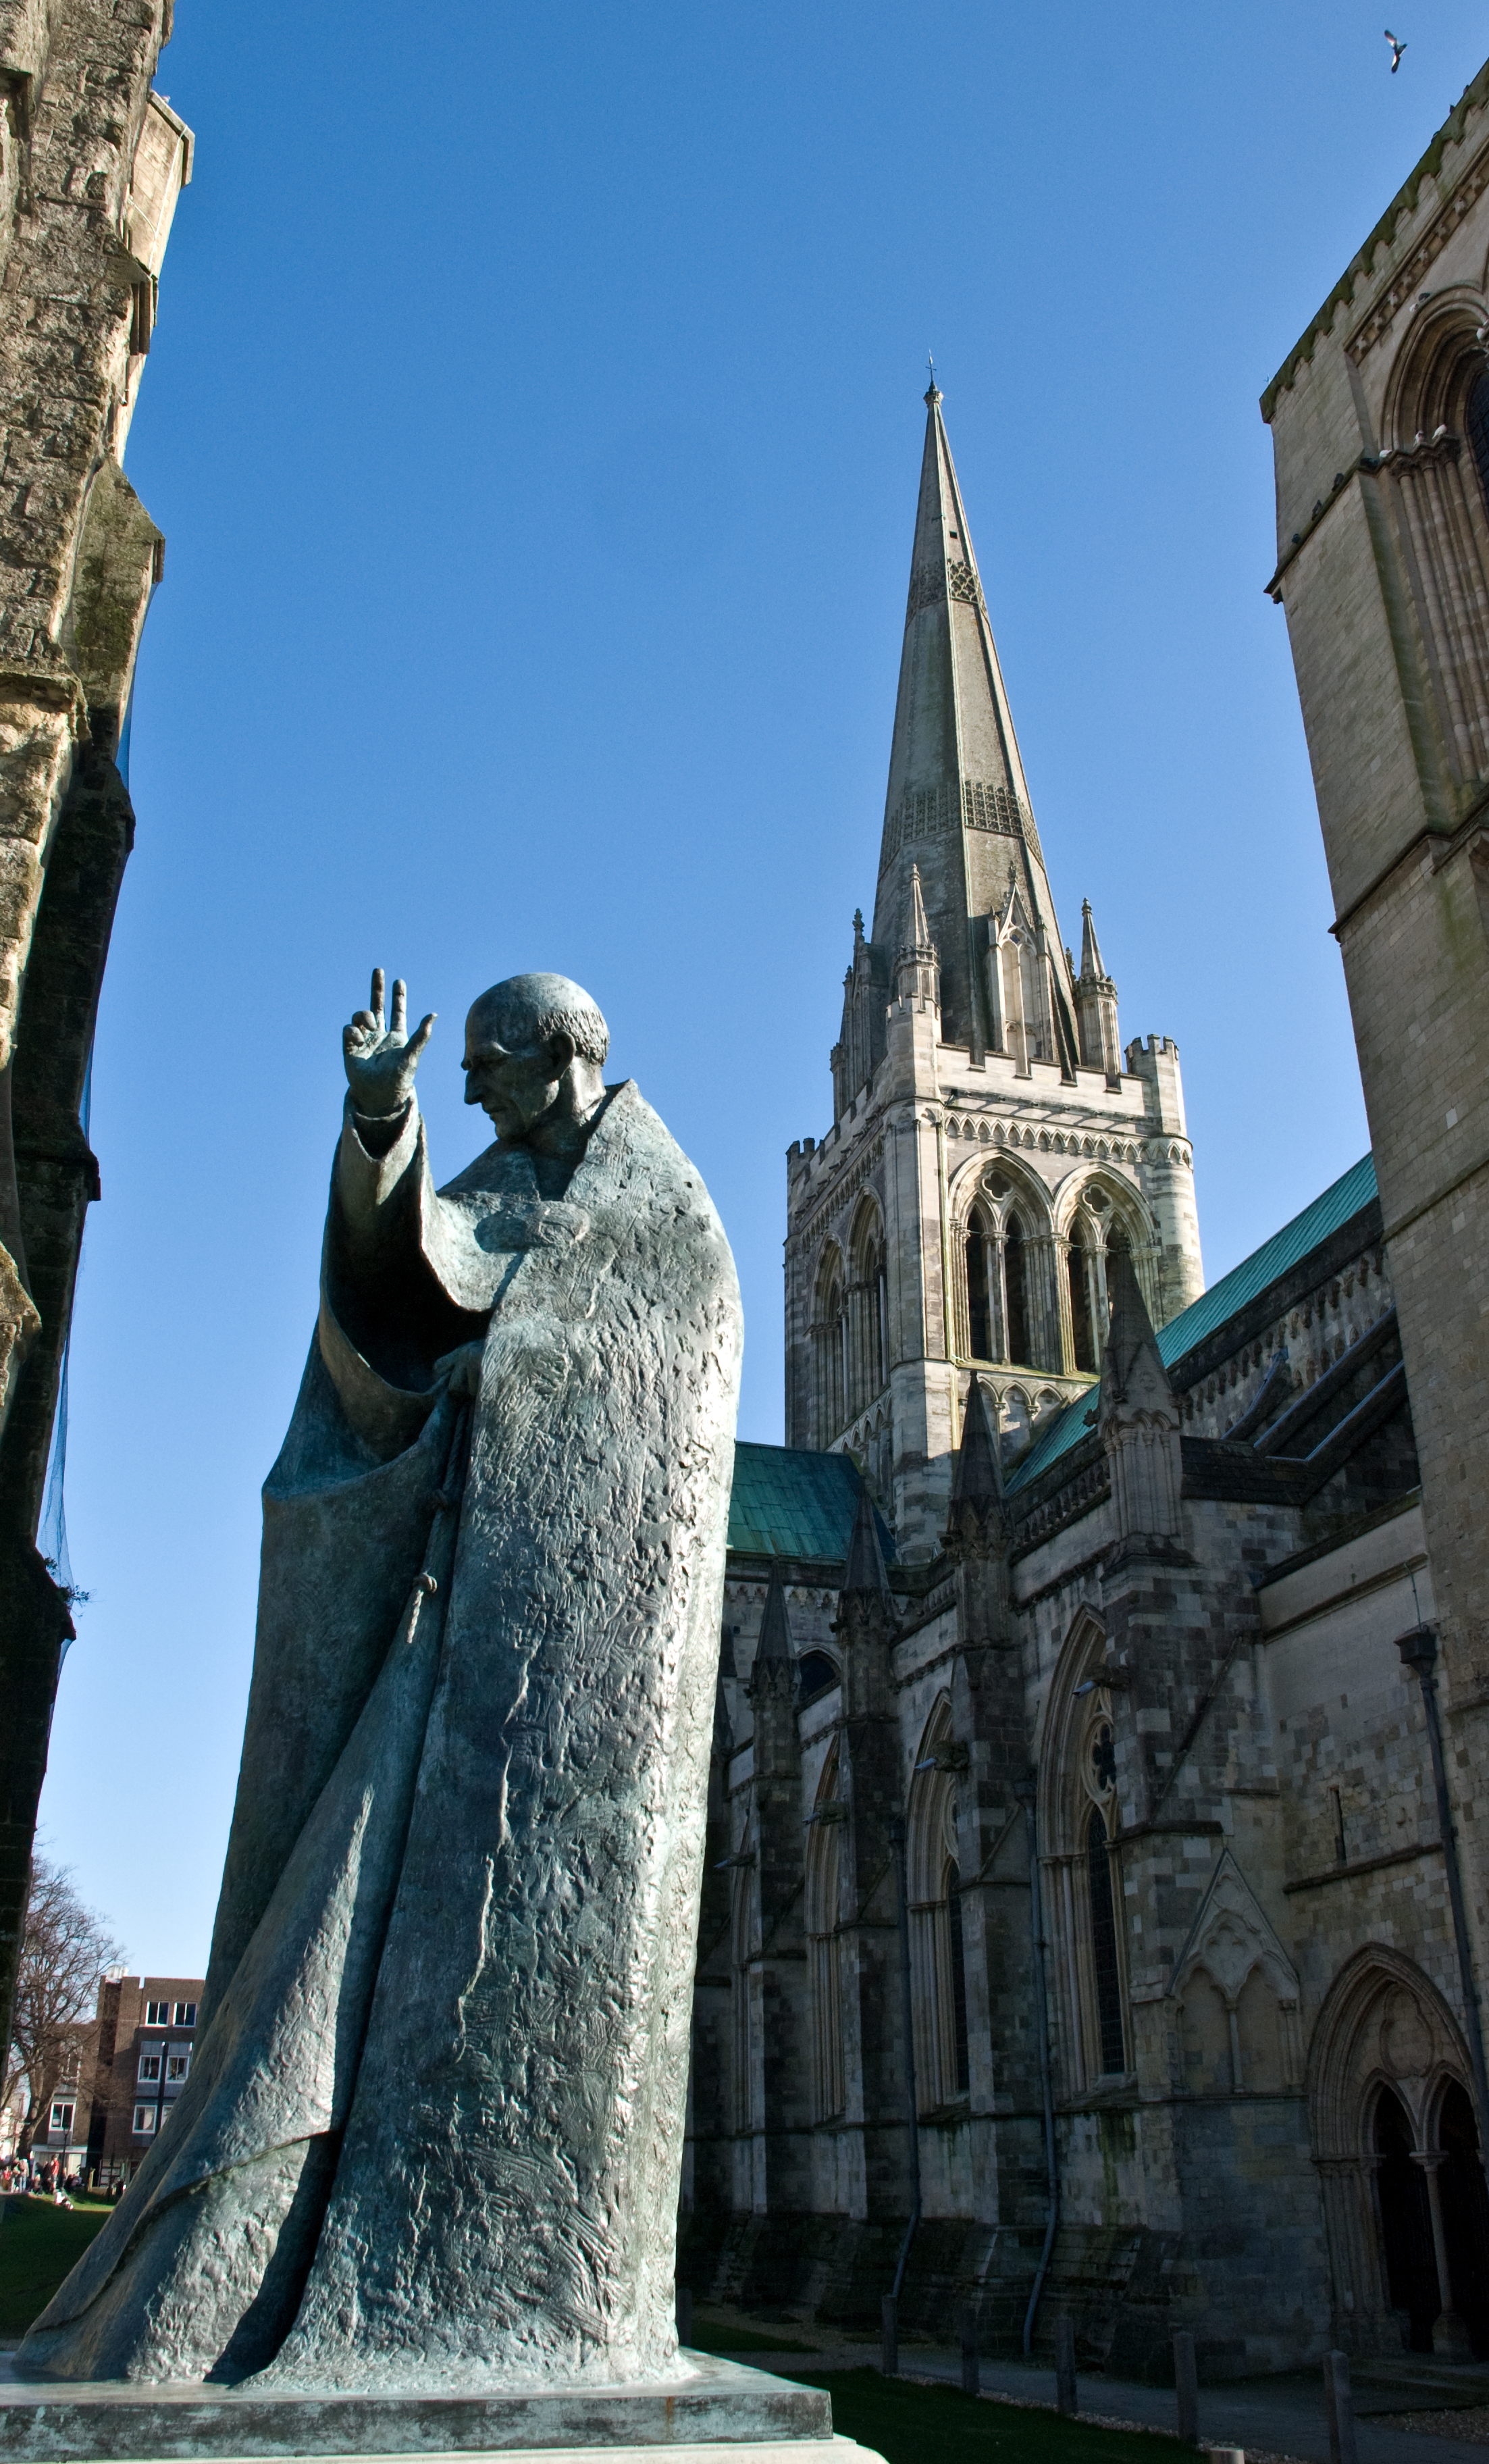 Statue of St Richard of Chichester by Philip Jackson, outside Chichester Cathedral